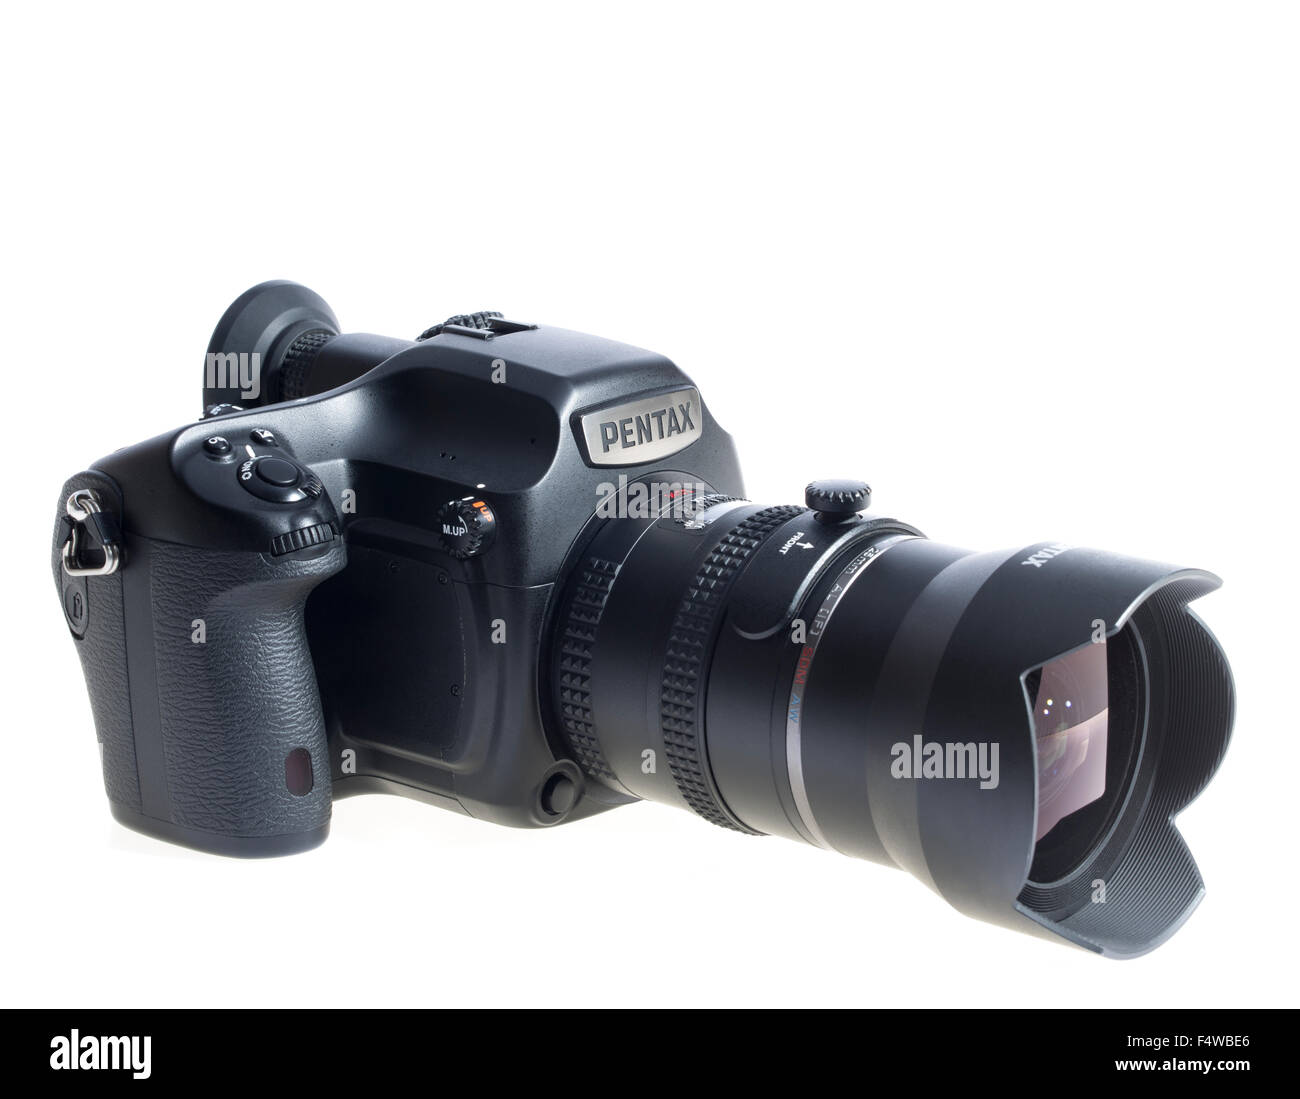 Pentax 645Z Medium Format Digital SLR Camera 53MP with 25mm wide angle lens. Professional Photography System. Released - Stock Image